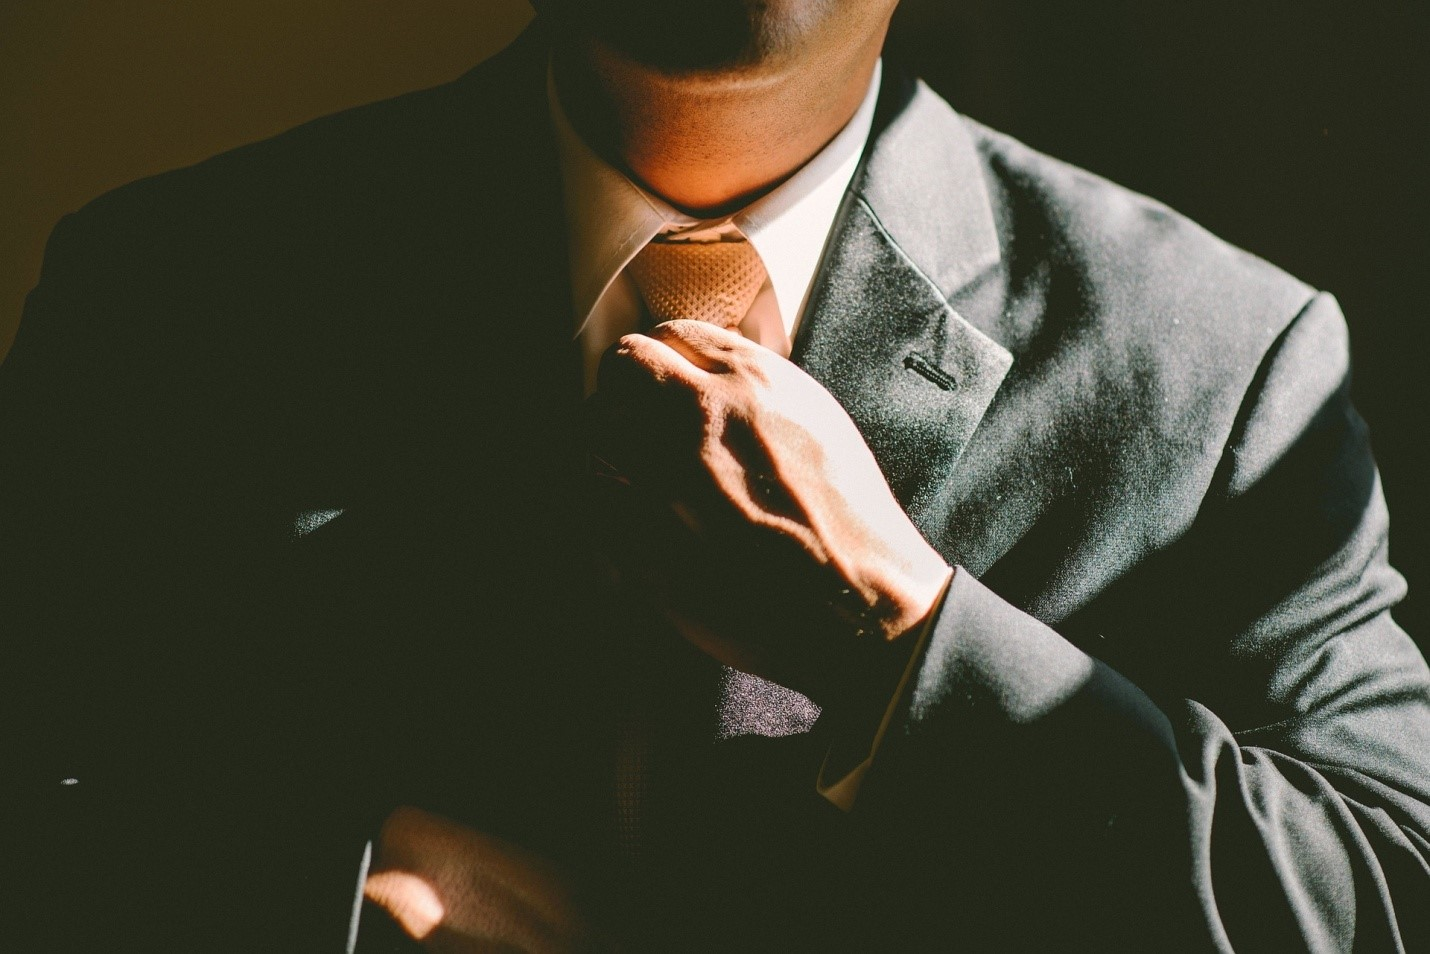 How to Properly Deal with a Grievance Procedure in the Workplace